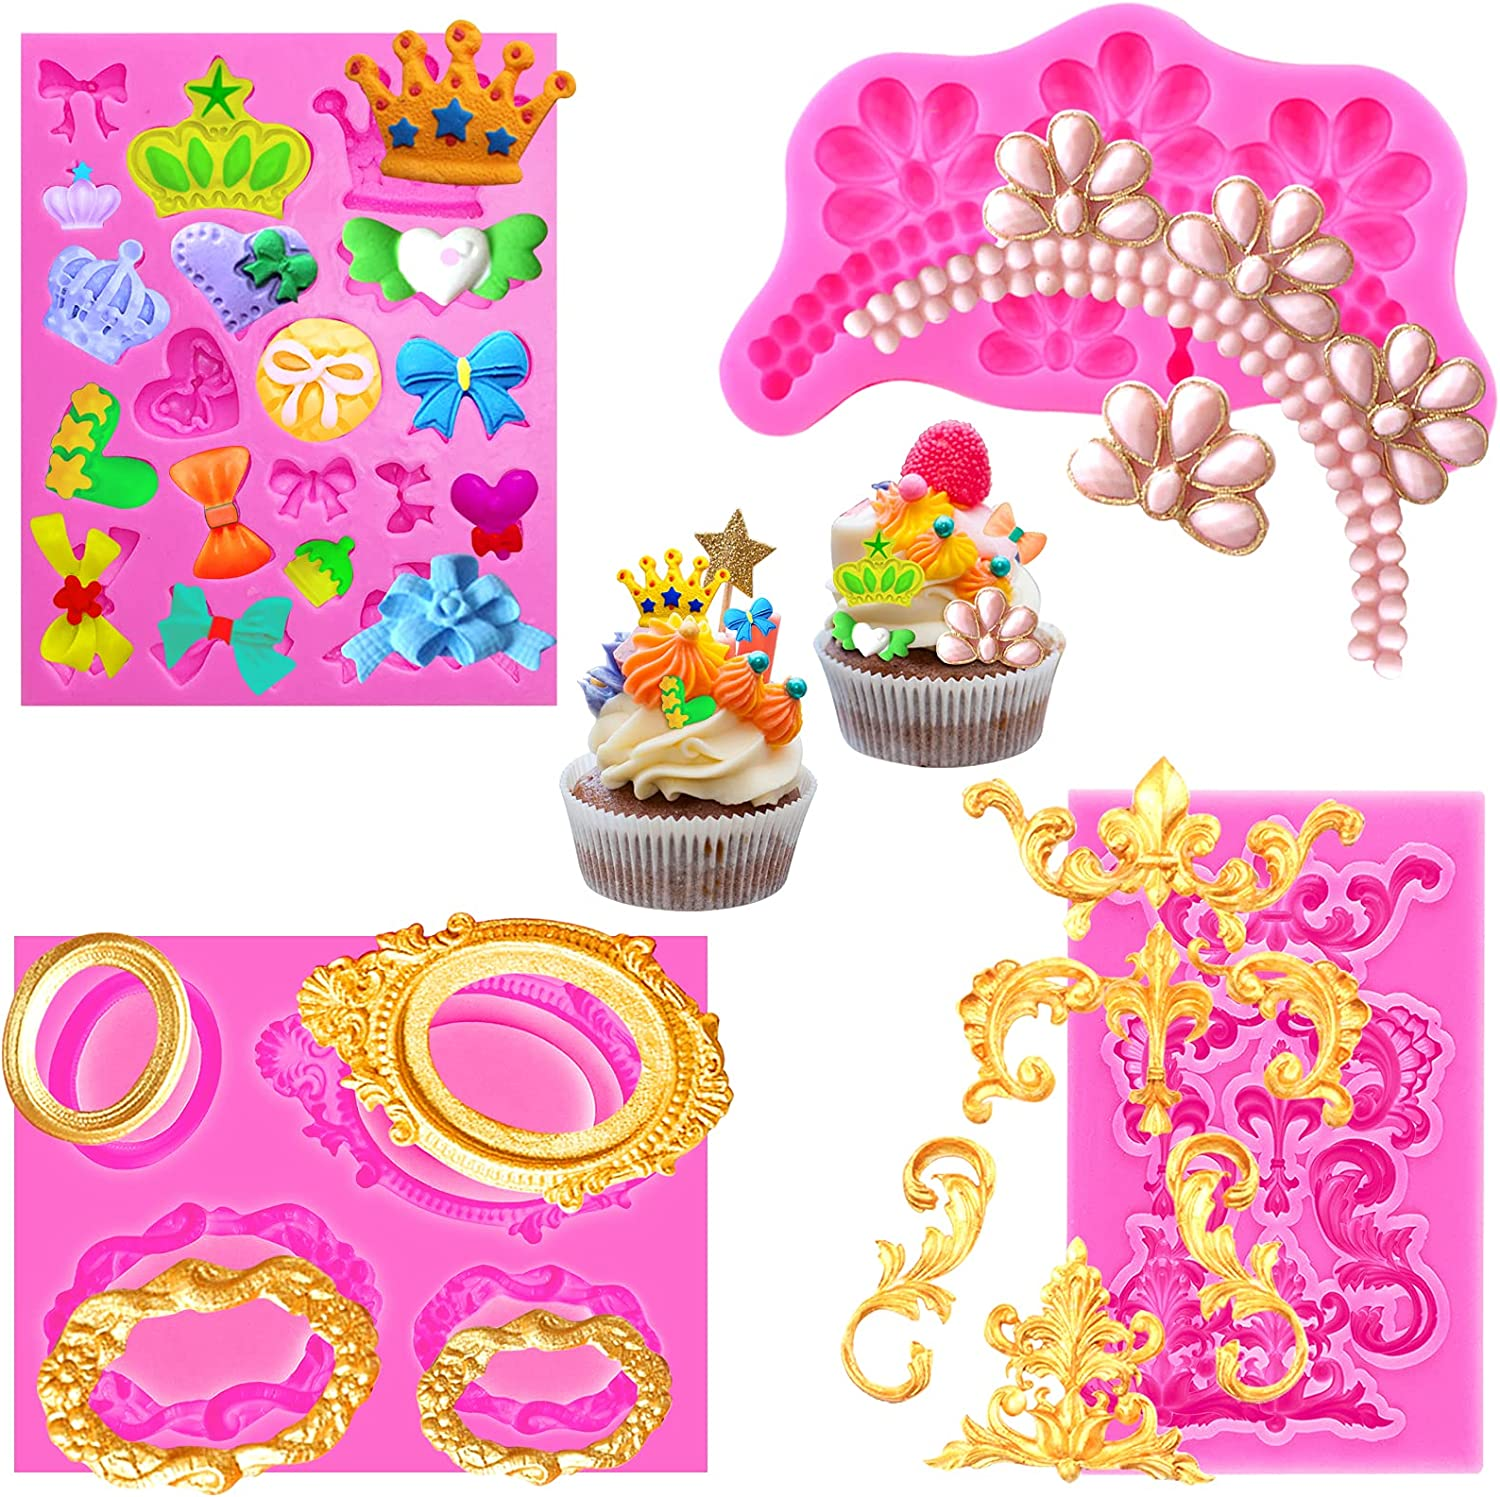 Baroque Chocolate Fondant Mold for Cake Pop Lollipop Cupcake Topper Decor, 4pack Royal Lace Scroll Relief Crown Picture Frames Big Jewels & Pearls Crown Mini Bows Silicone Molds for Cake, Polymer Clay